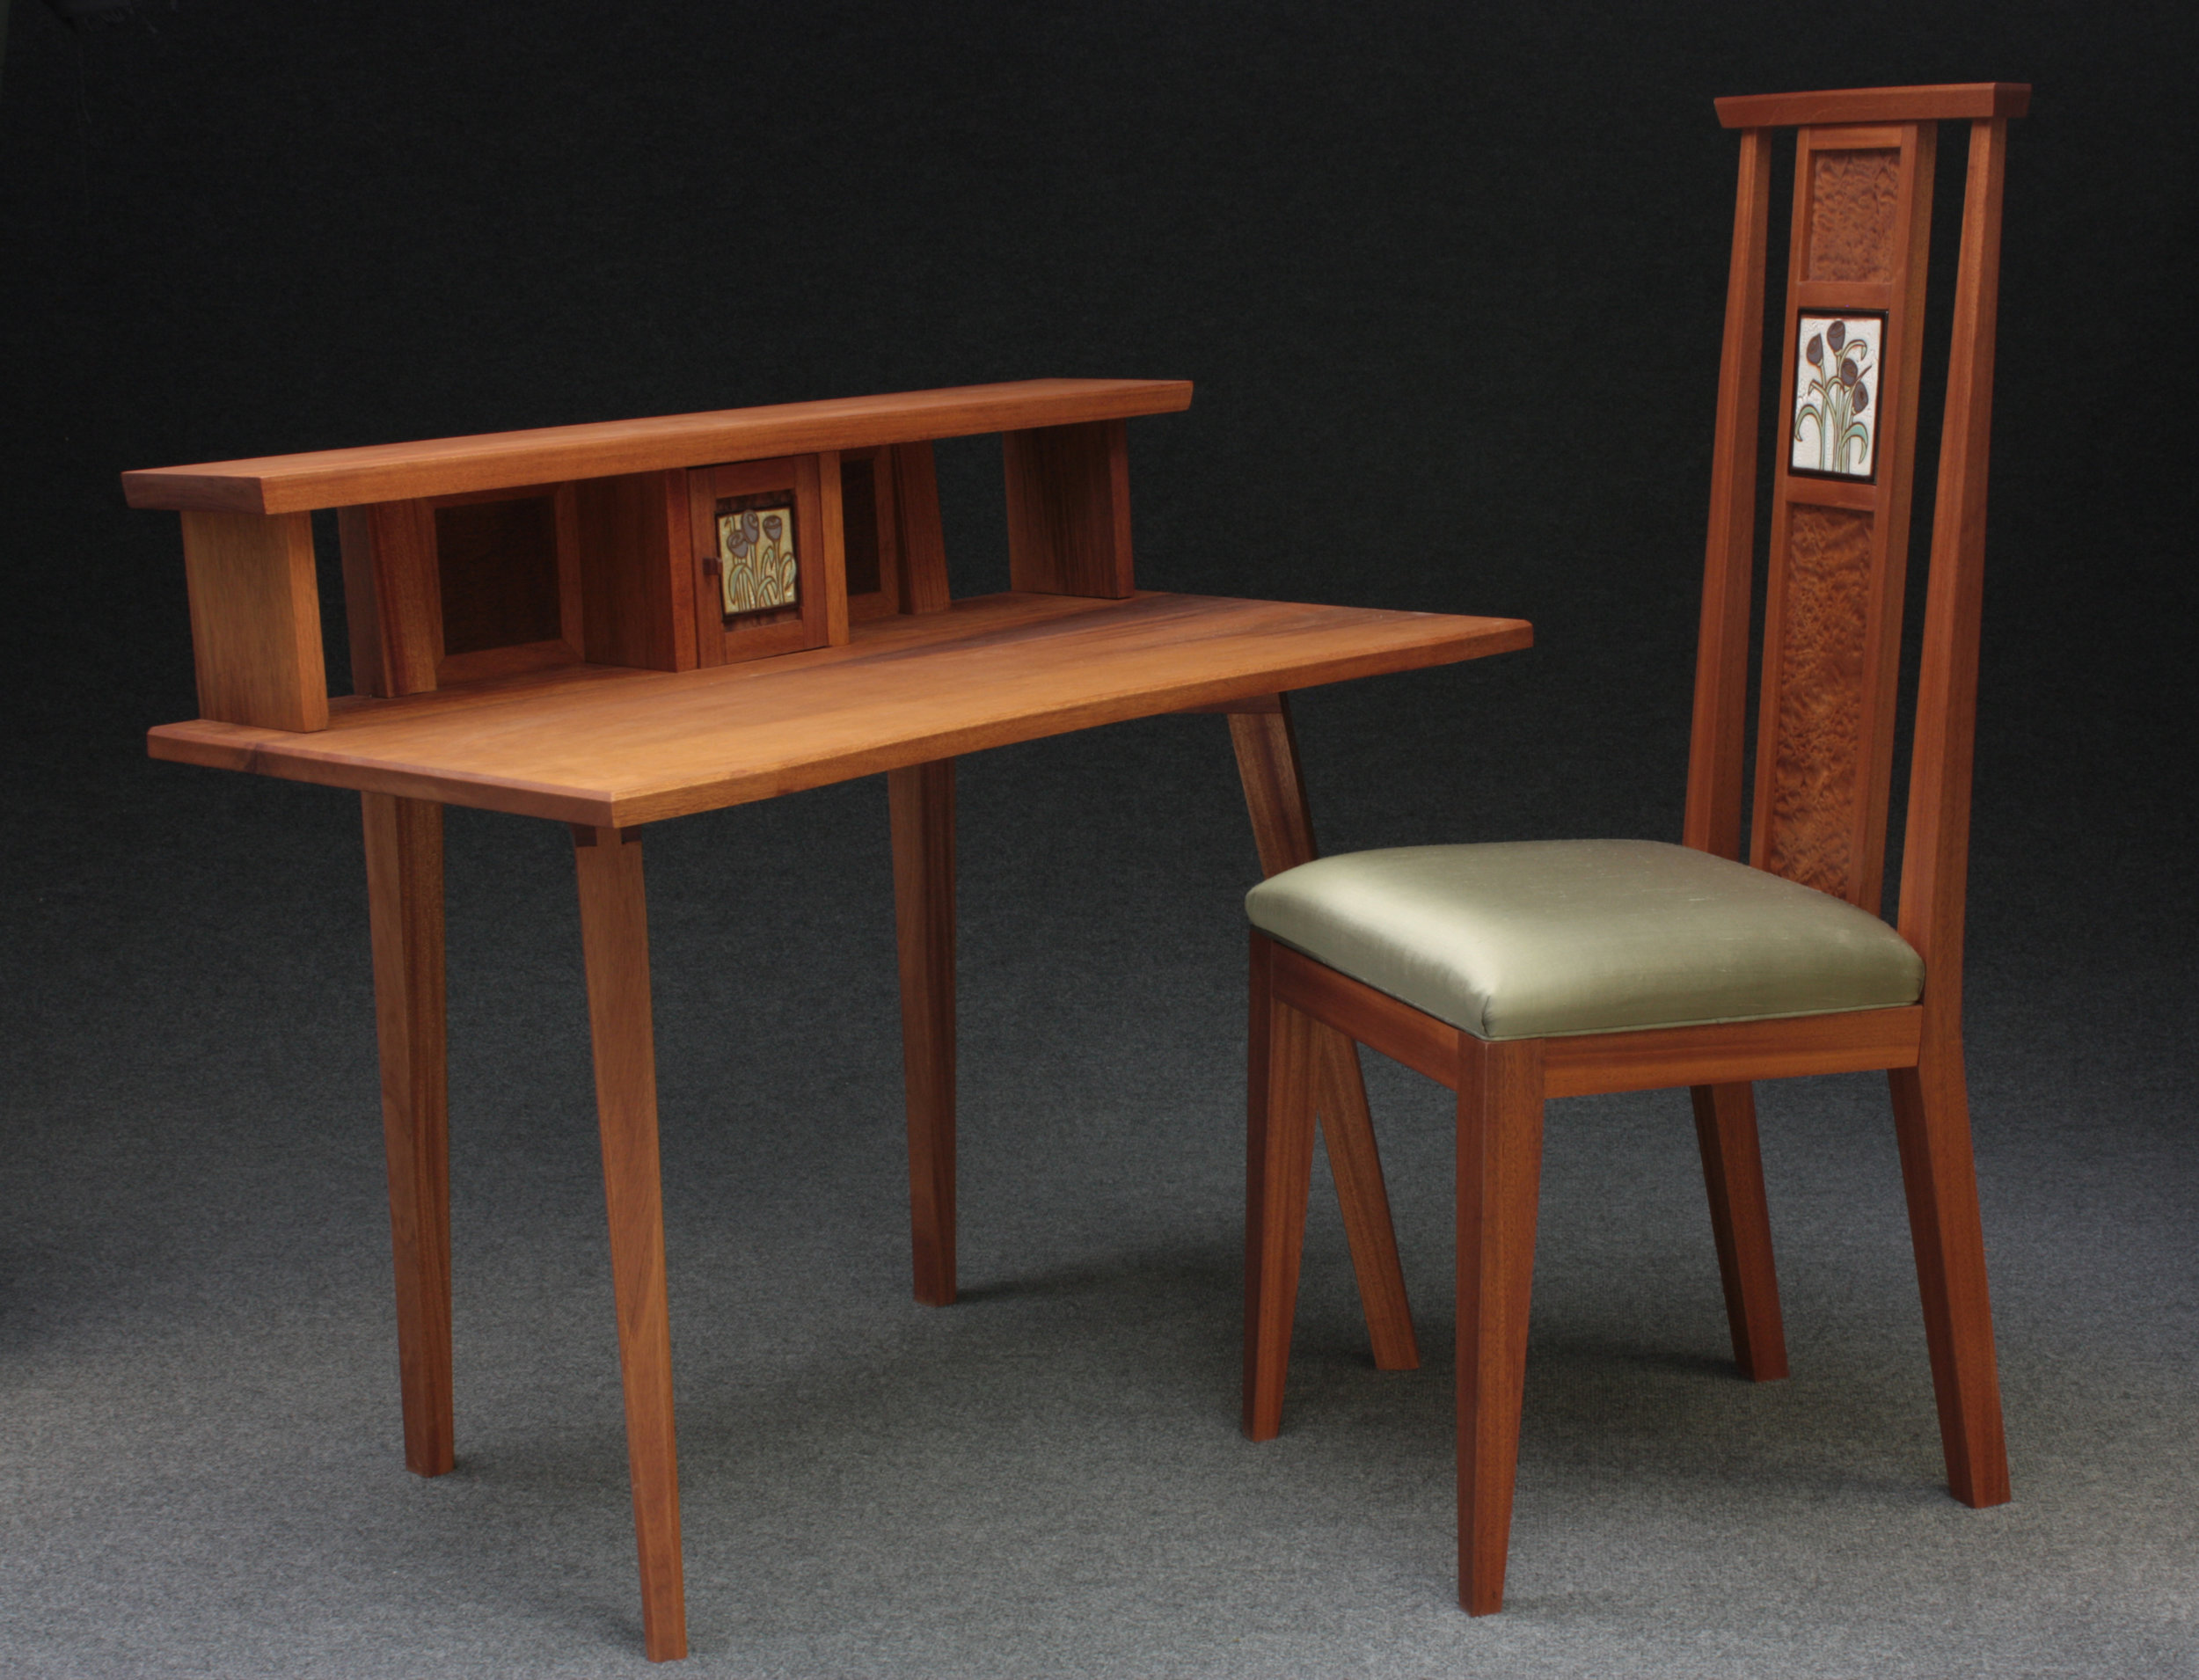 Desk and Chair.jpg